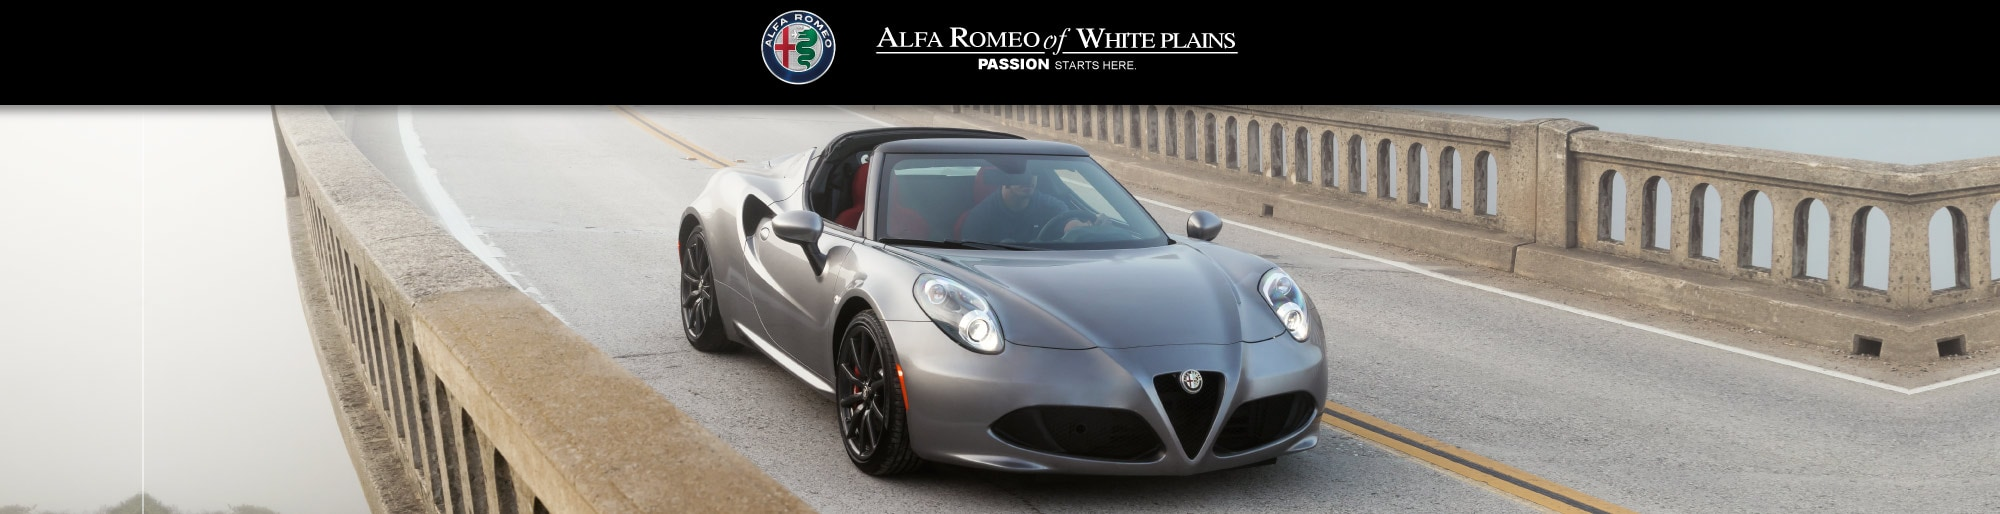 Alfa Romeo 4C lease deal image